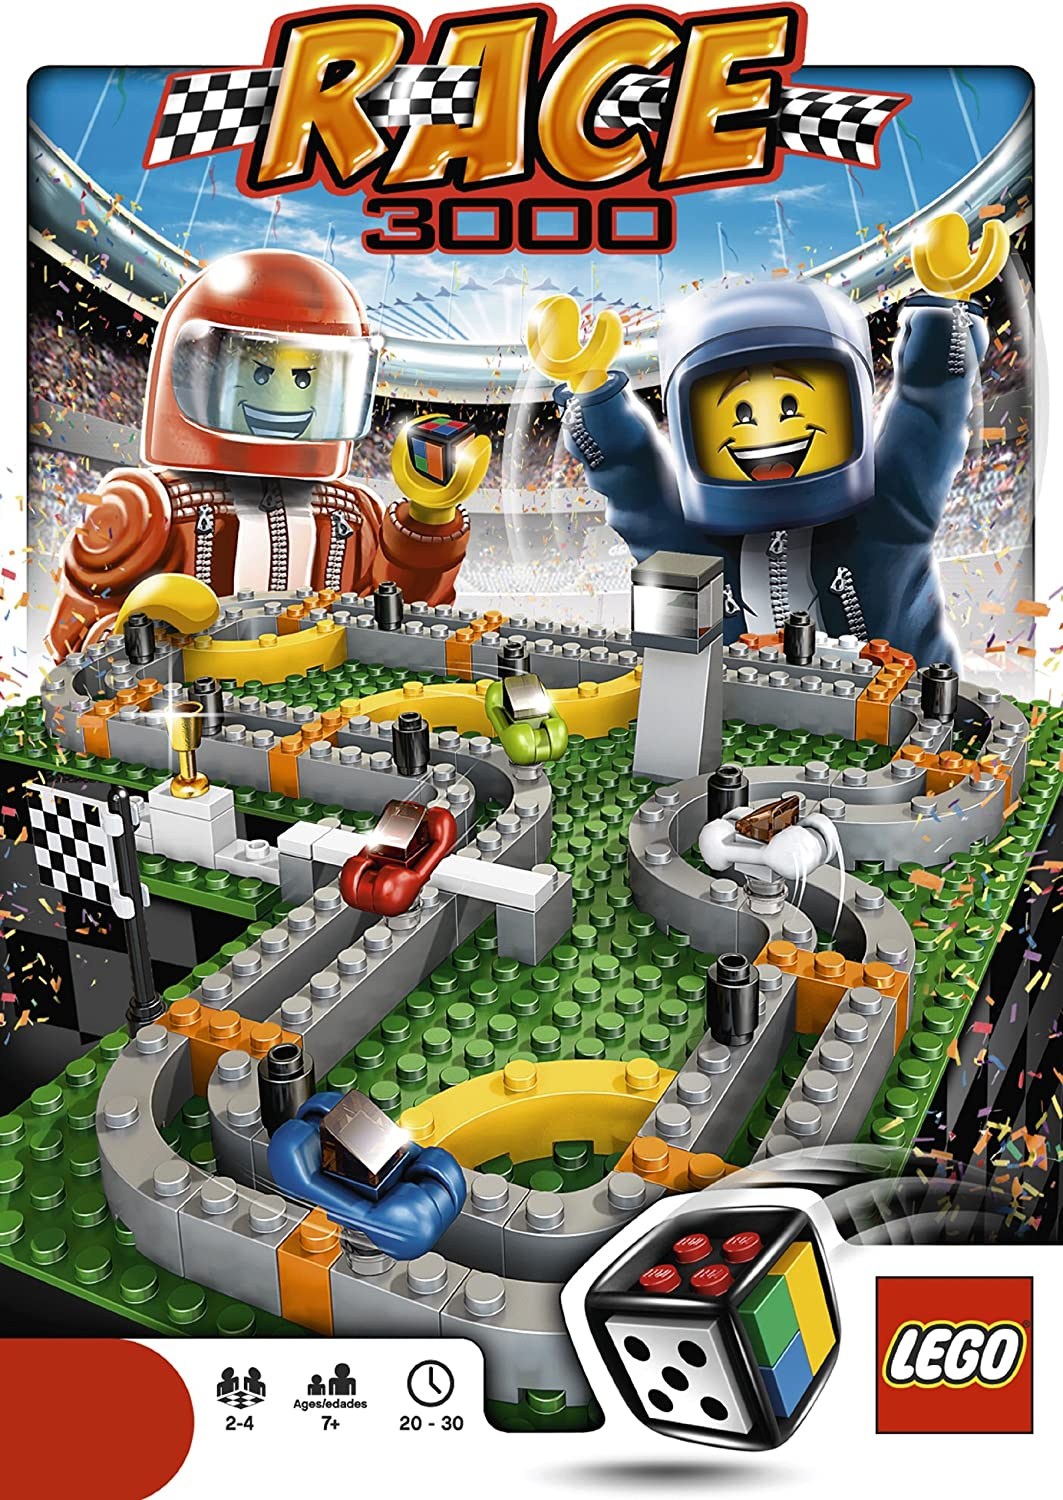 3839 NOT GAME Lego Instructions Race 3000 Game Build Ins and Rules